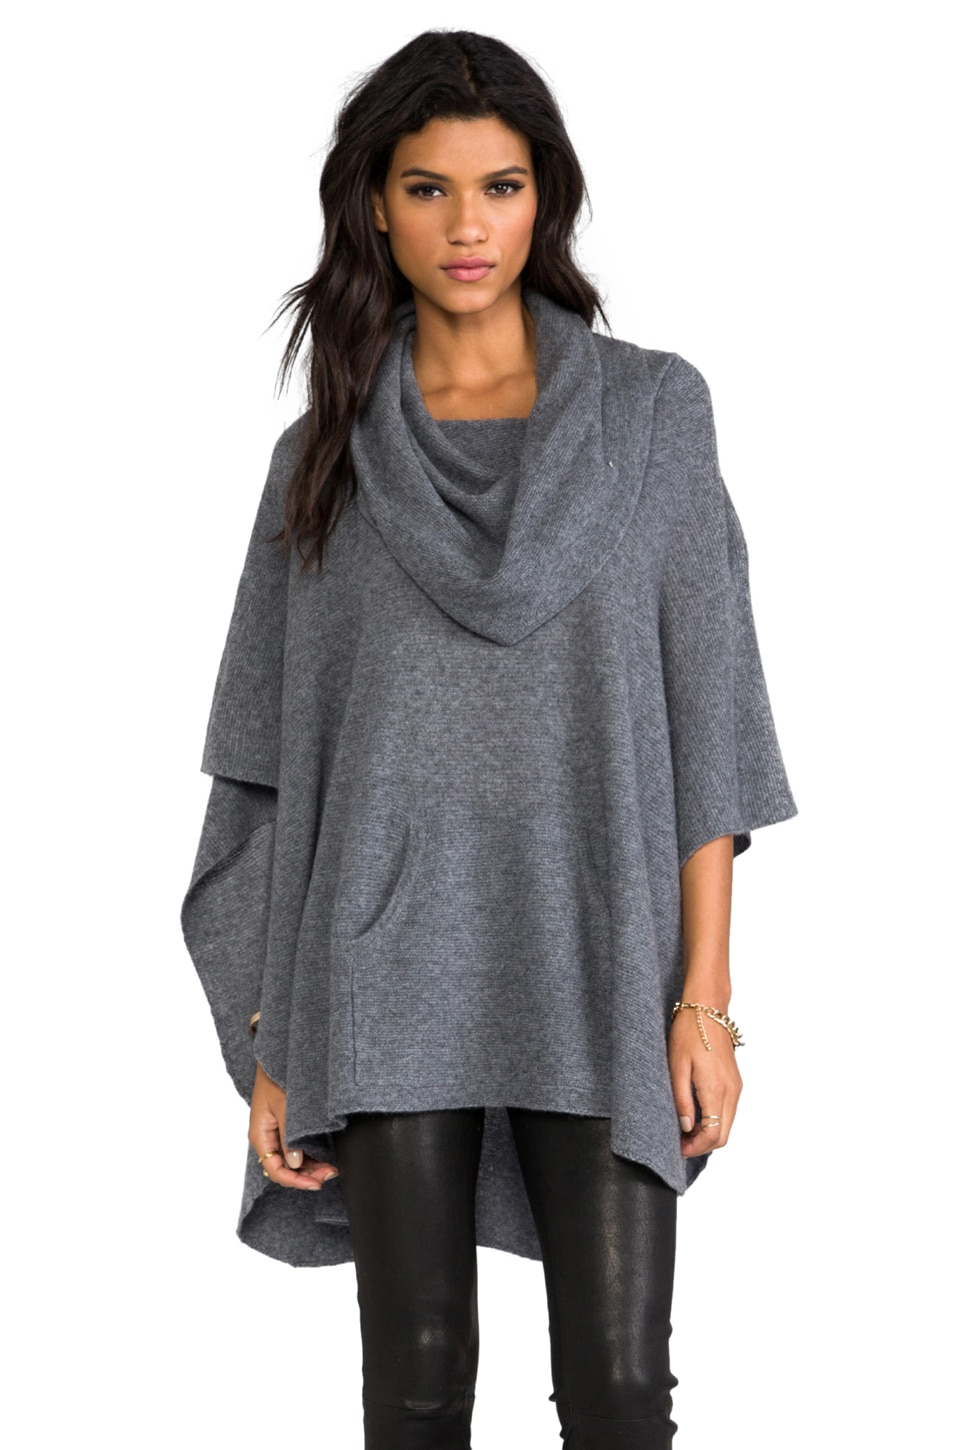 360CASHMERE Laurel Cashmere Poncho in Heather Grey